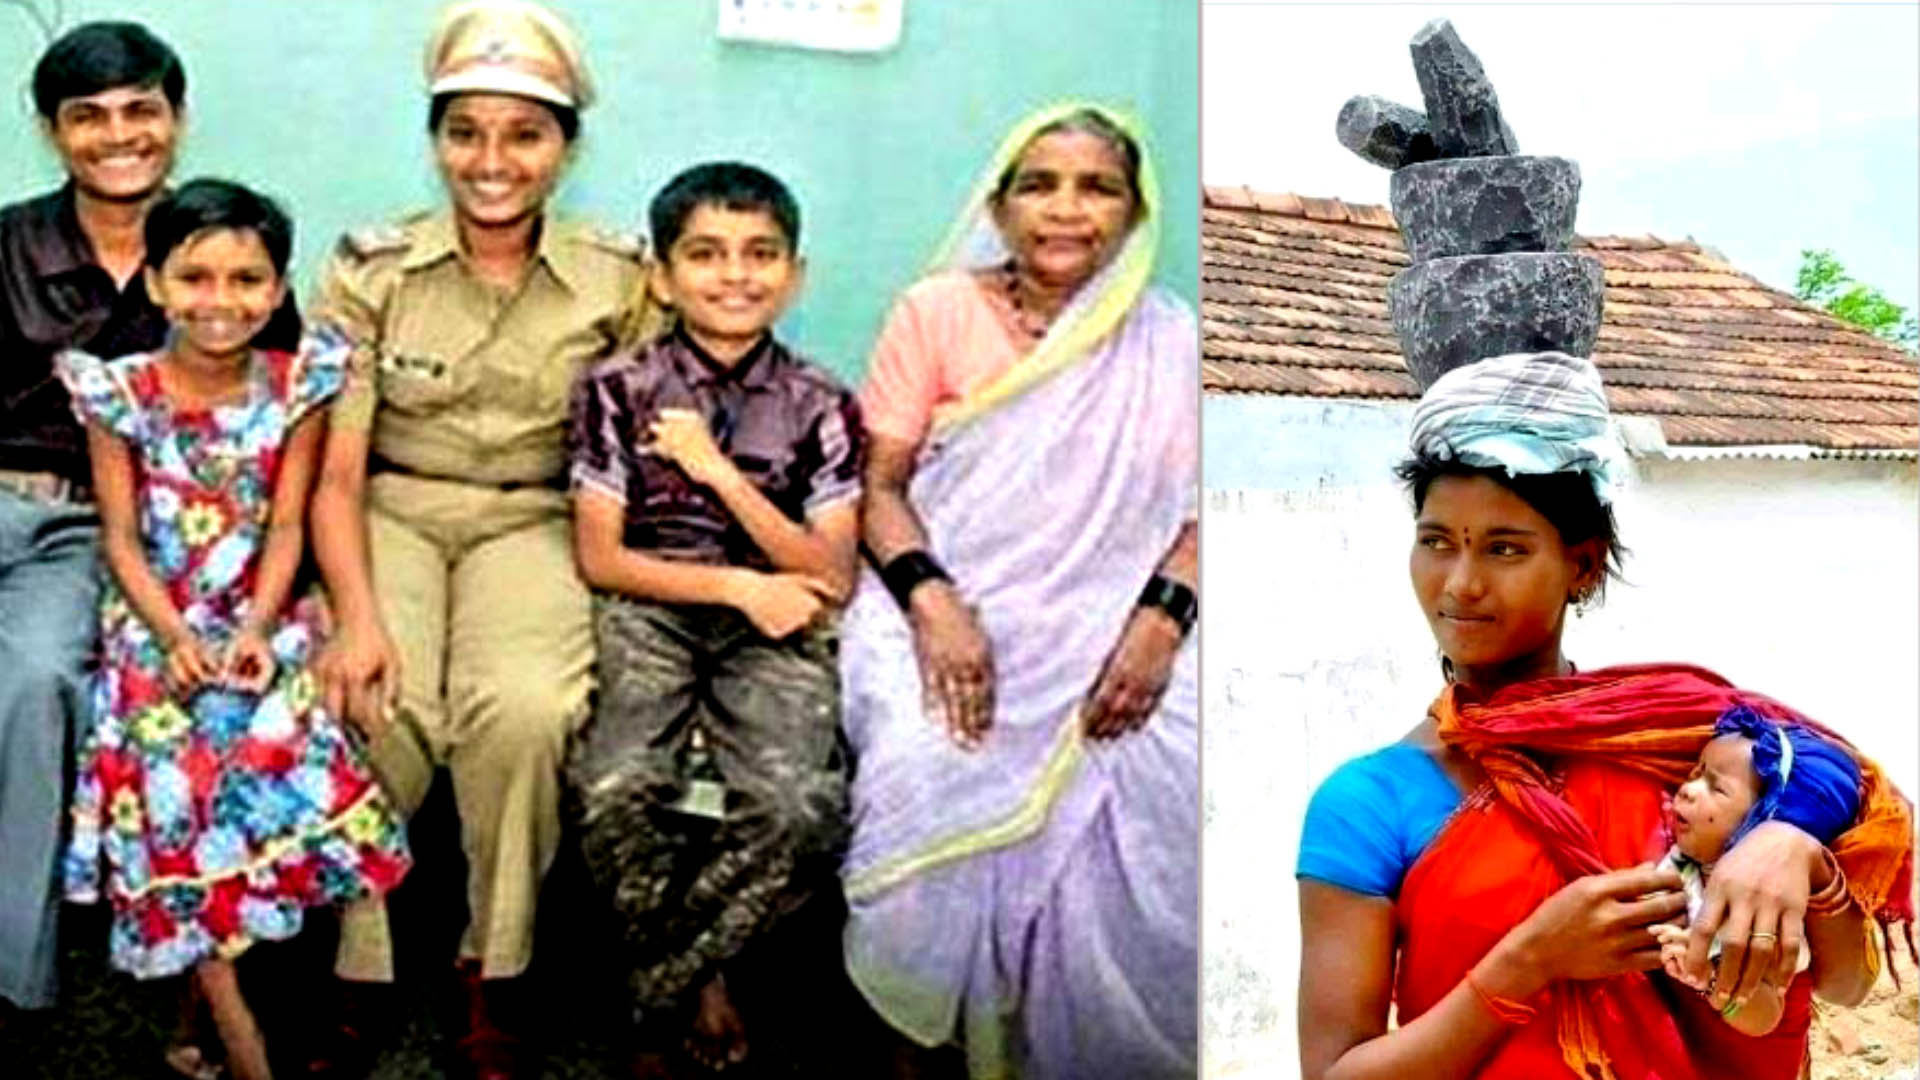 Mortar and Pestle Sellers becomes SI in Maharashtra Police: IPS Officer Tweeted her Success Story